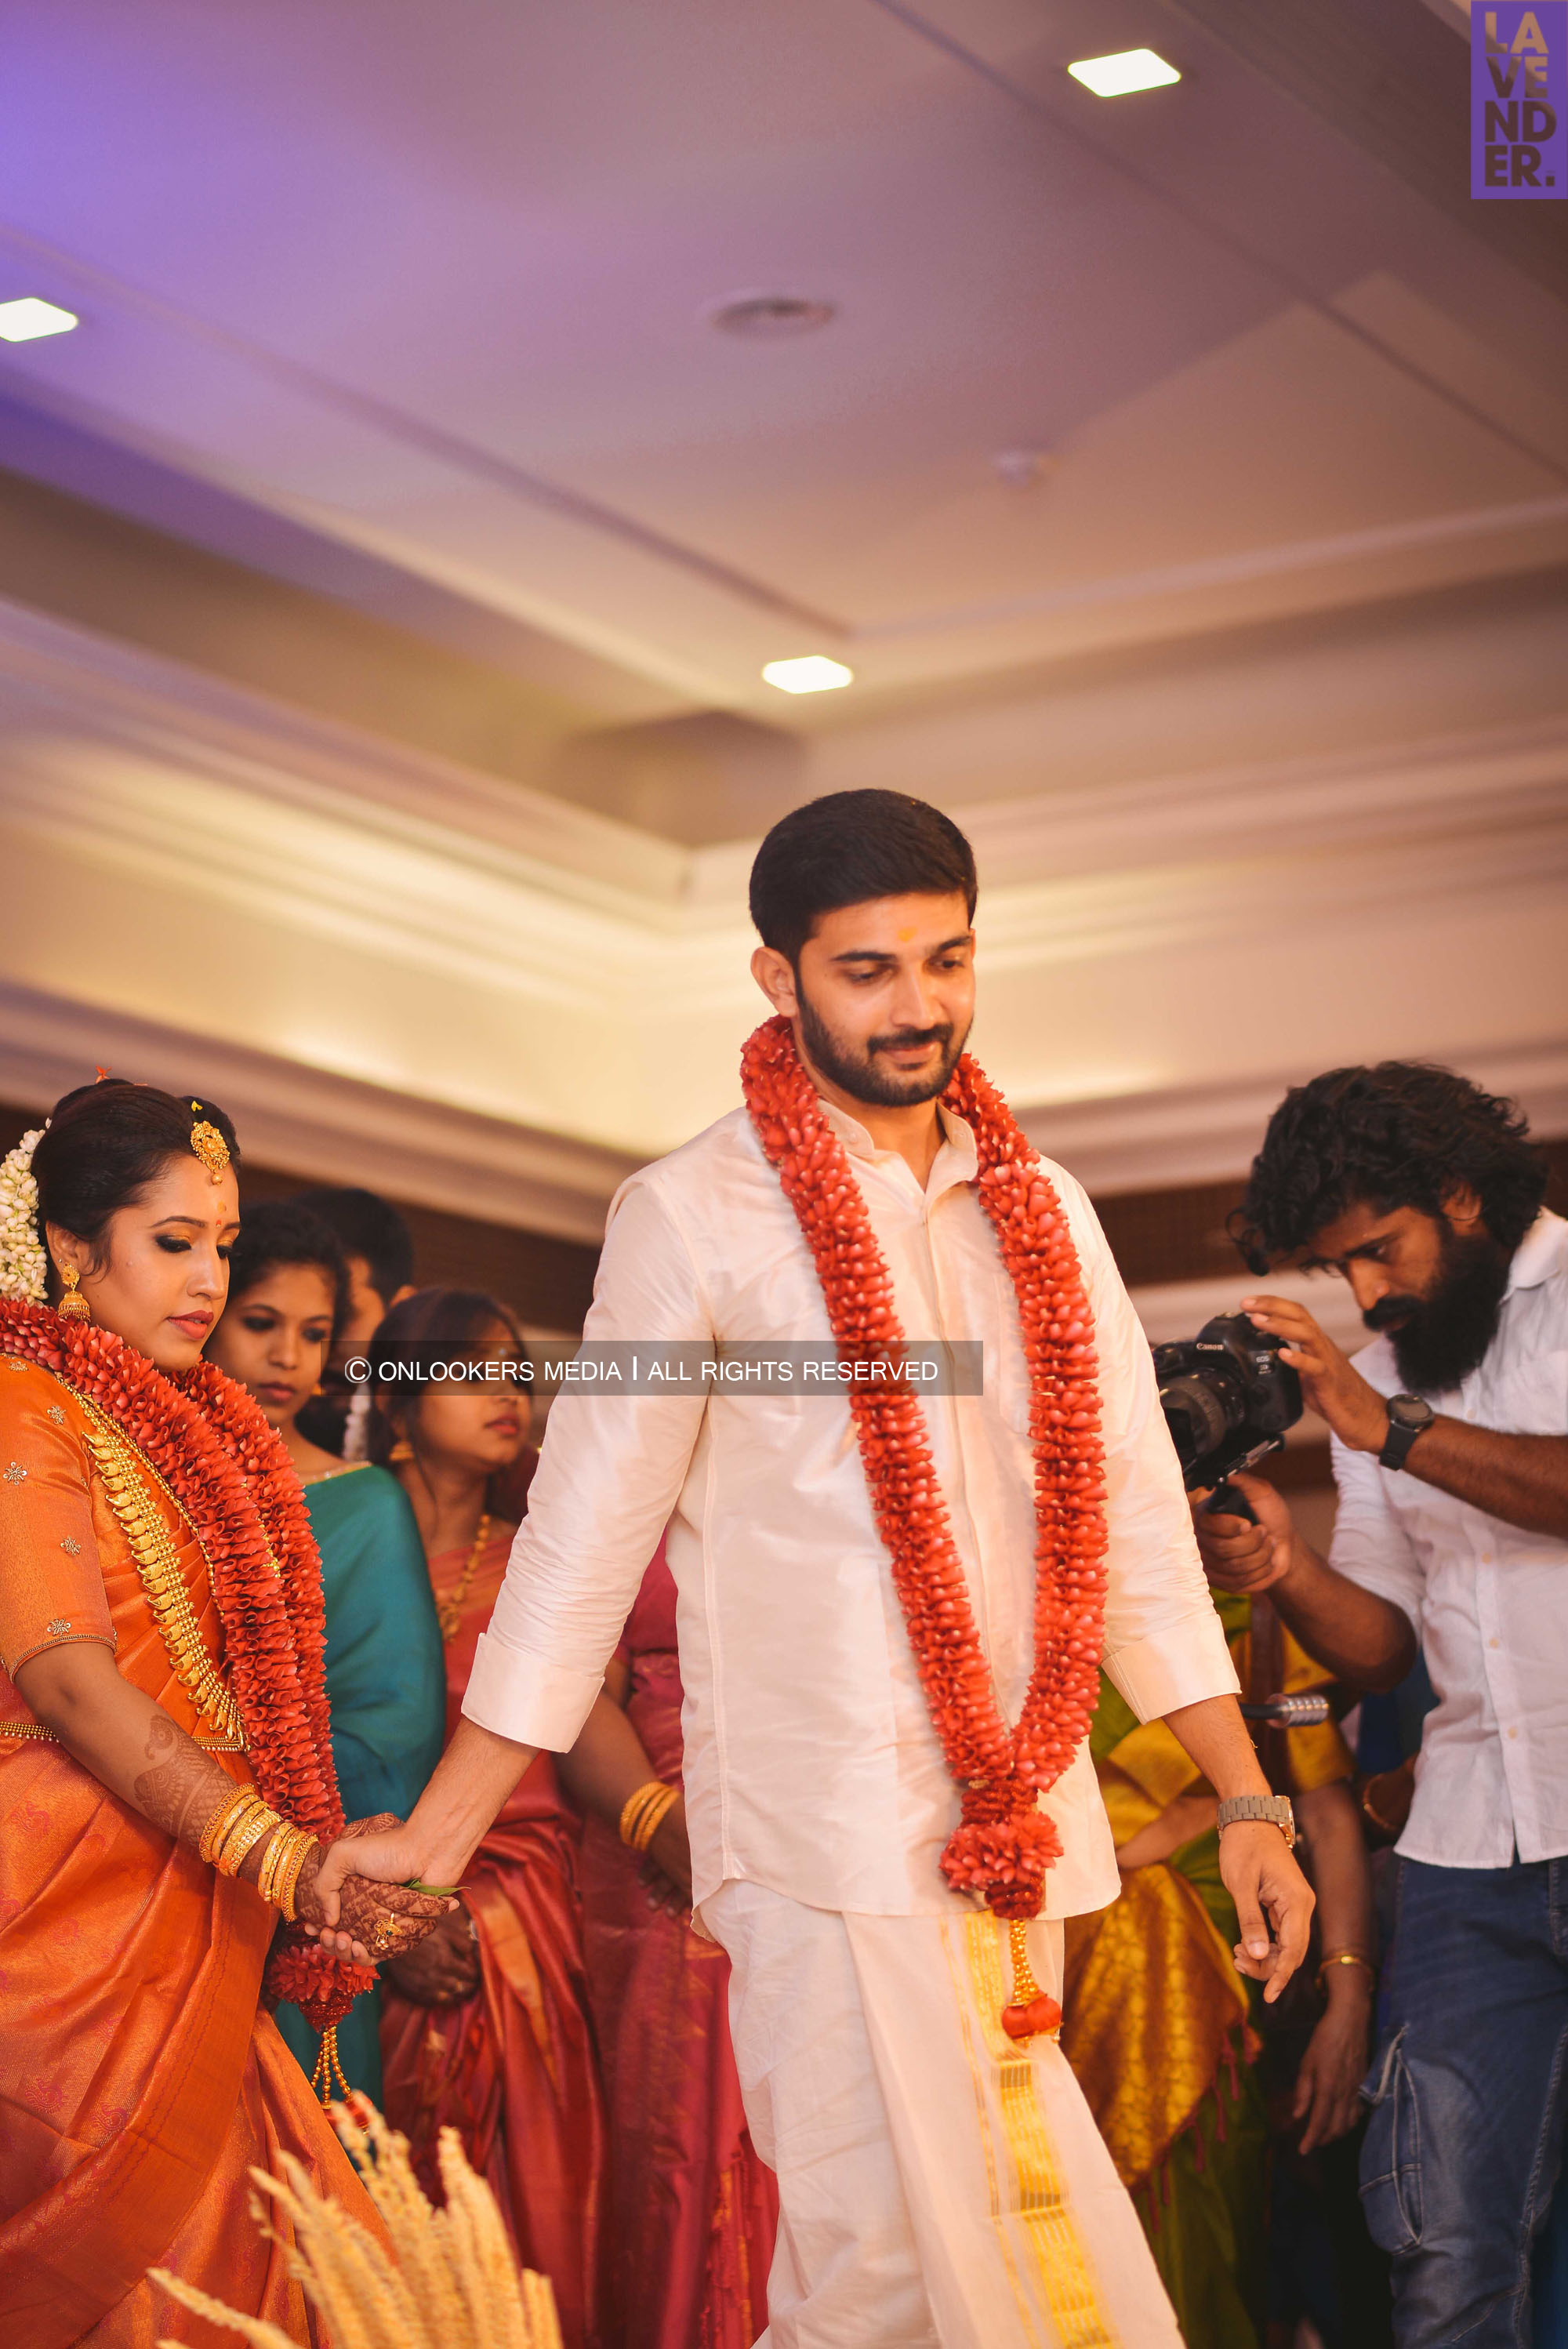 http://onlookersmedia.in/wp-content/uploads/2018/05/sreejith-vijay-wedding-stills-images-65.jpg